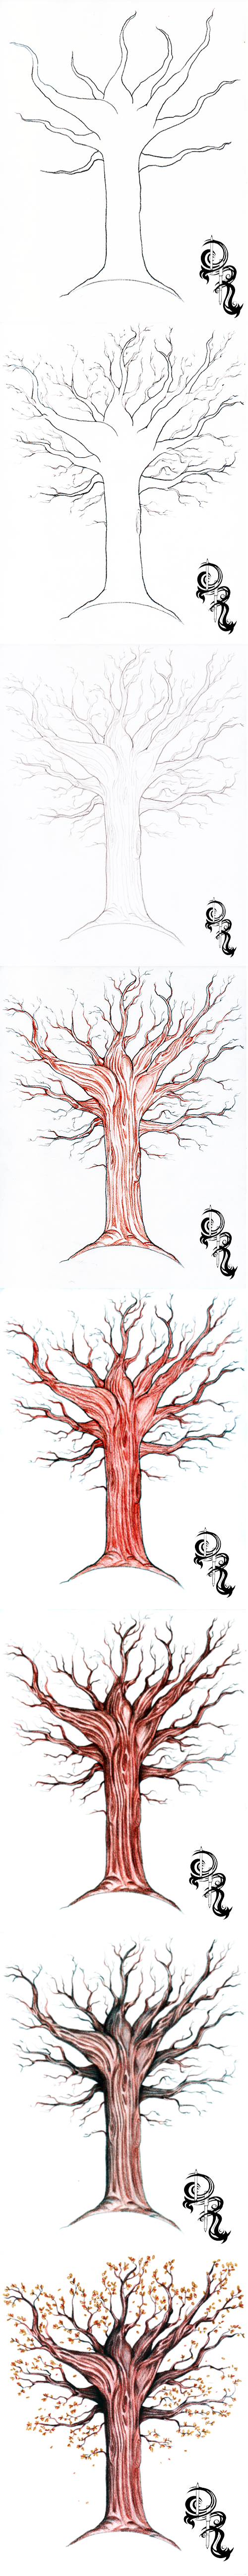 How To Draw An Autumn Tree With Colored Pencils